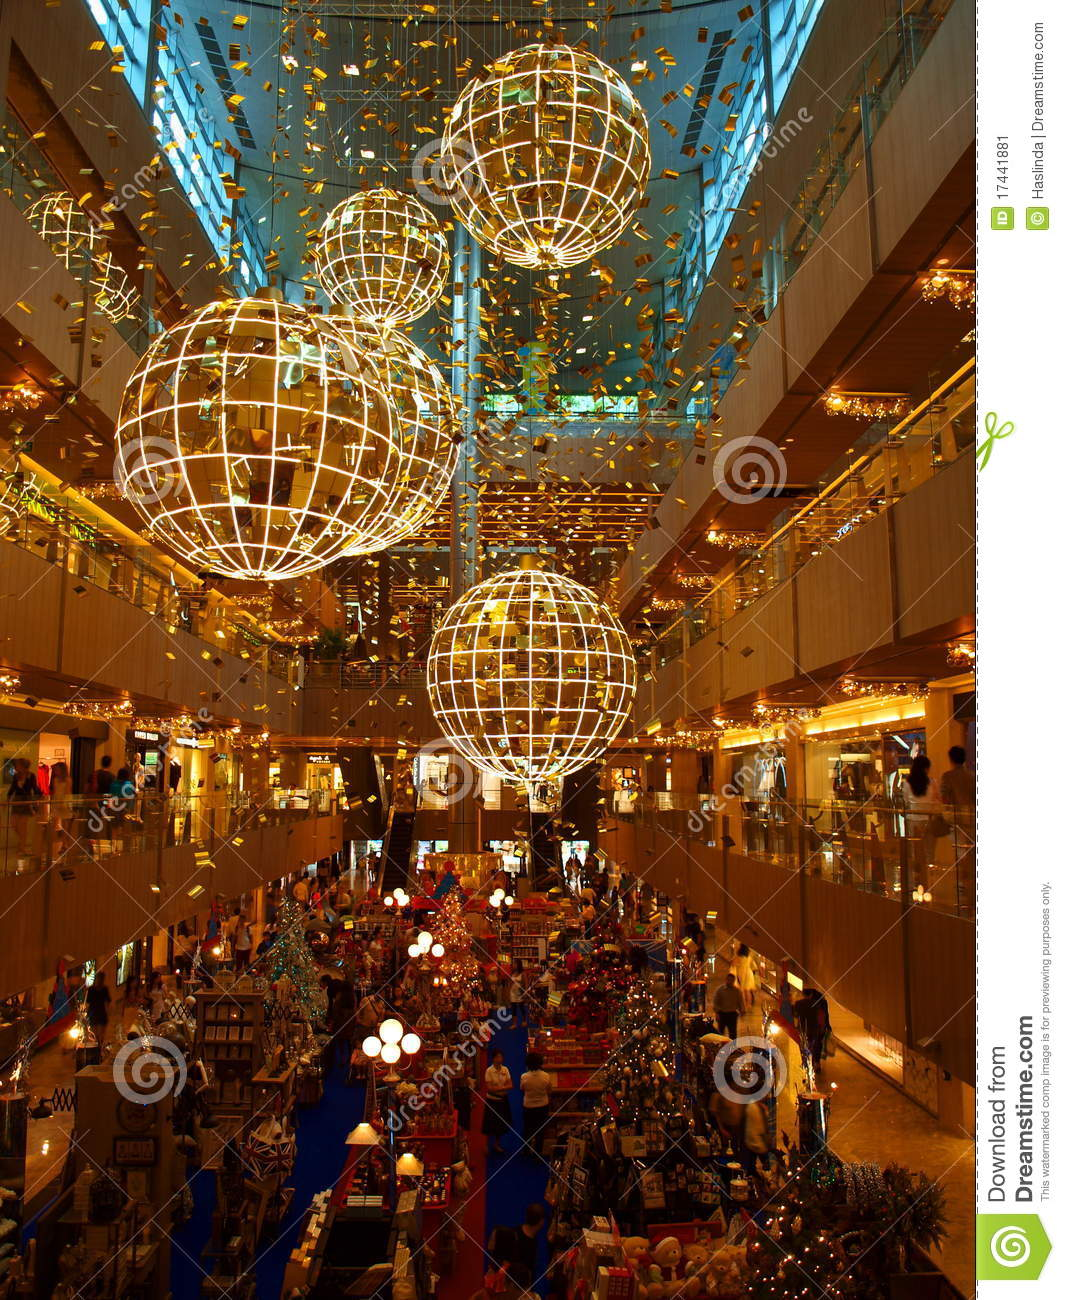 Lighting Stores In Paris: Sale At Shopping Mall Editorial Photo. Image Of Reflection